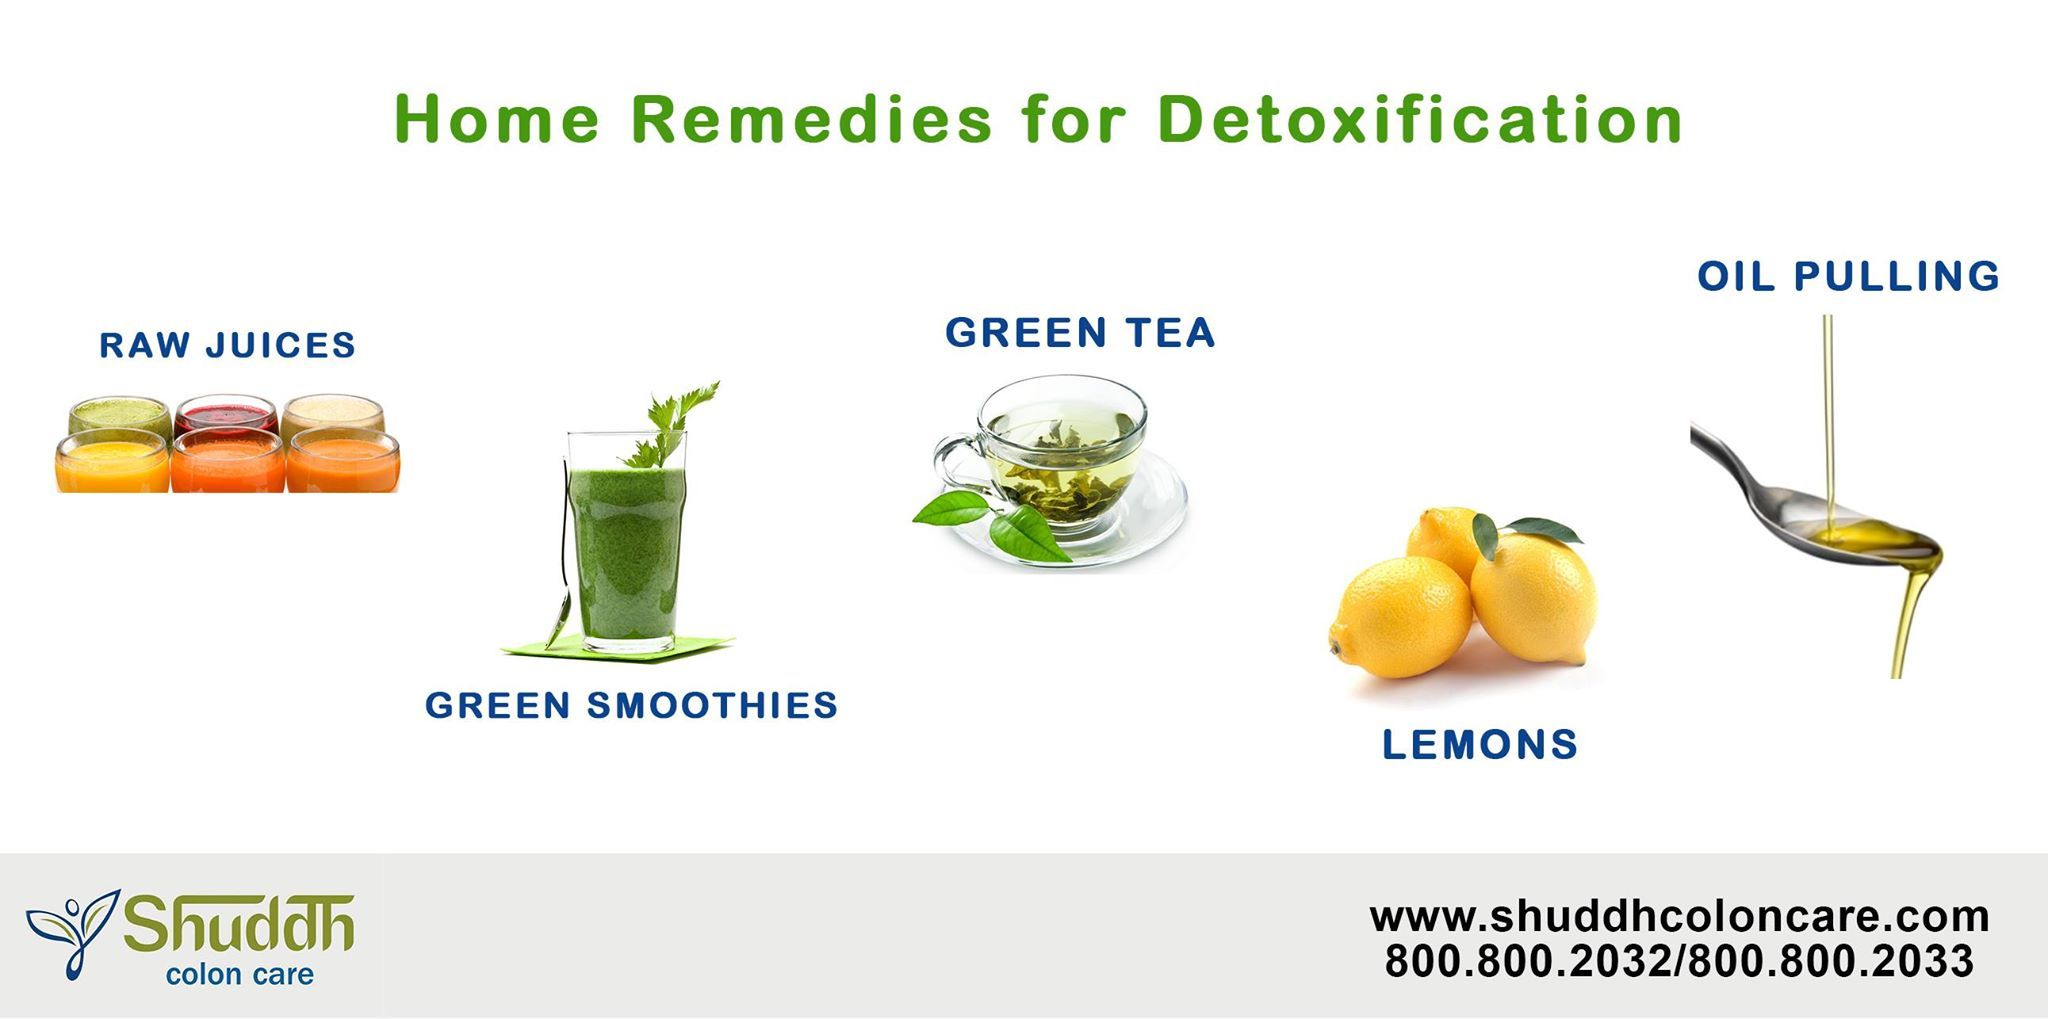 Home remedies for detoxification More Info -> http://shuddhcoloncare.com/care.html ‪#‎detoxification‬ ‪#‎homeremedies‬ ‪#‎colondetox‬ ‪#‎healthcare‬